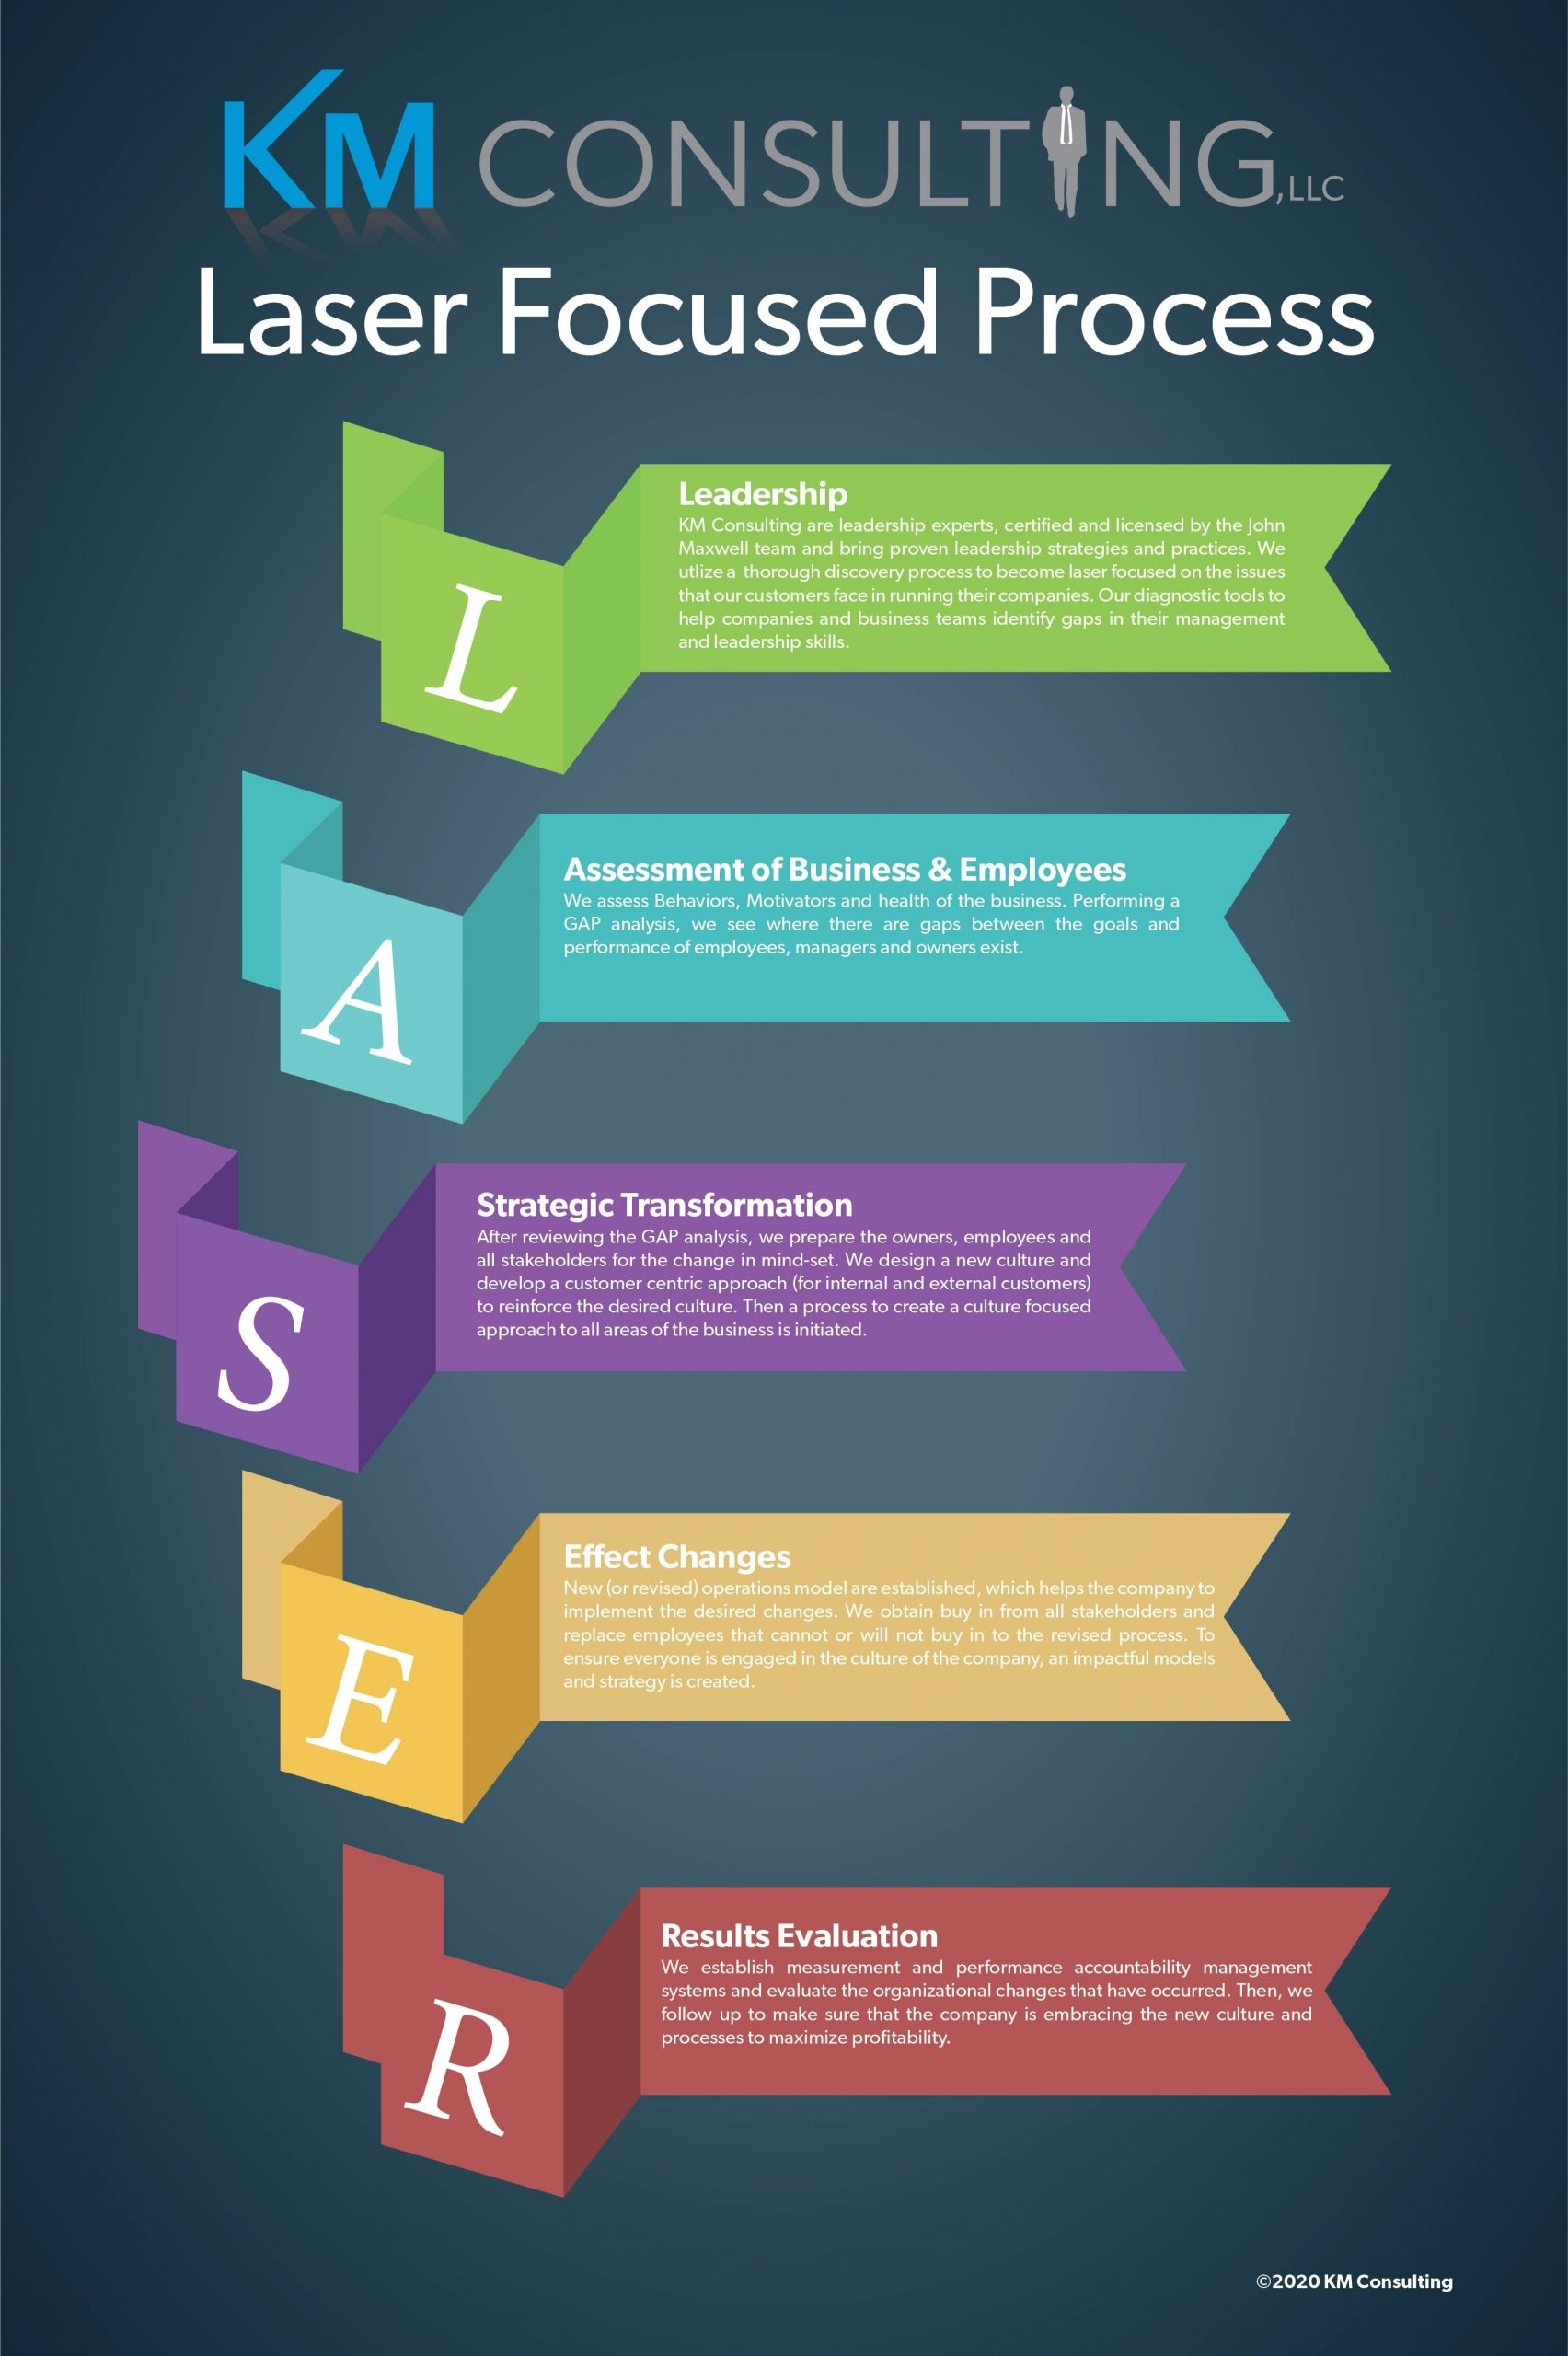 Laser Focused Process Infographic